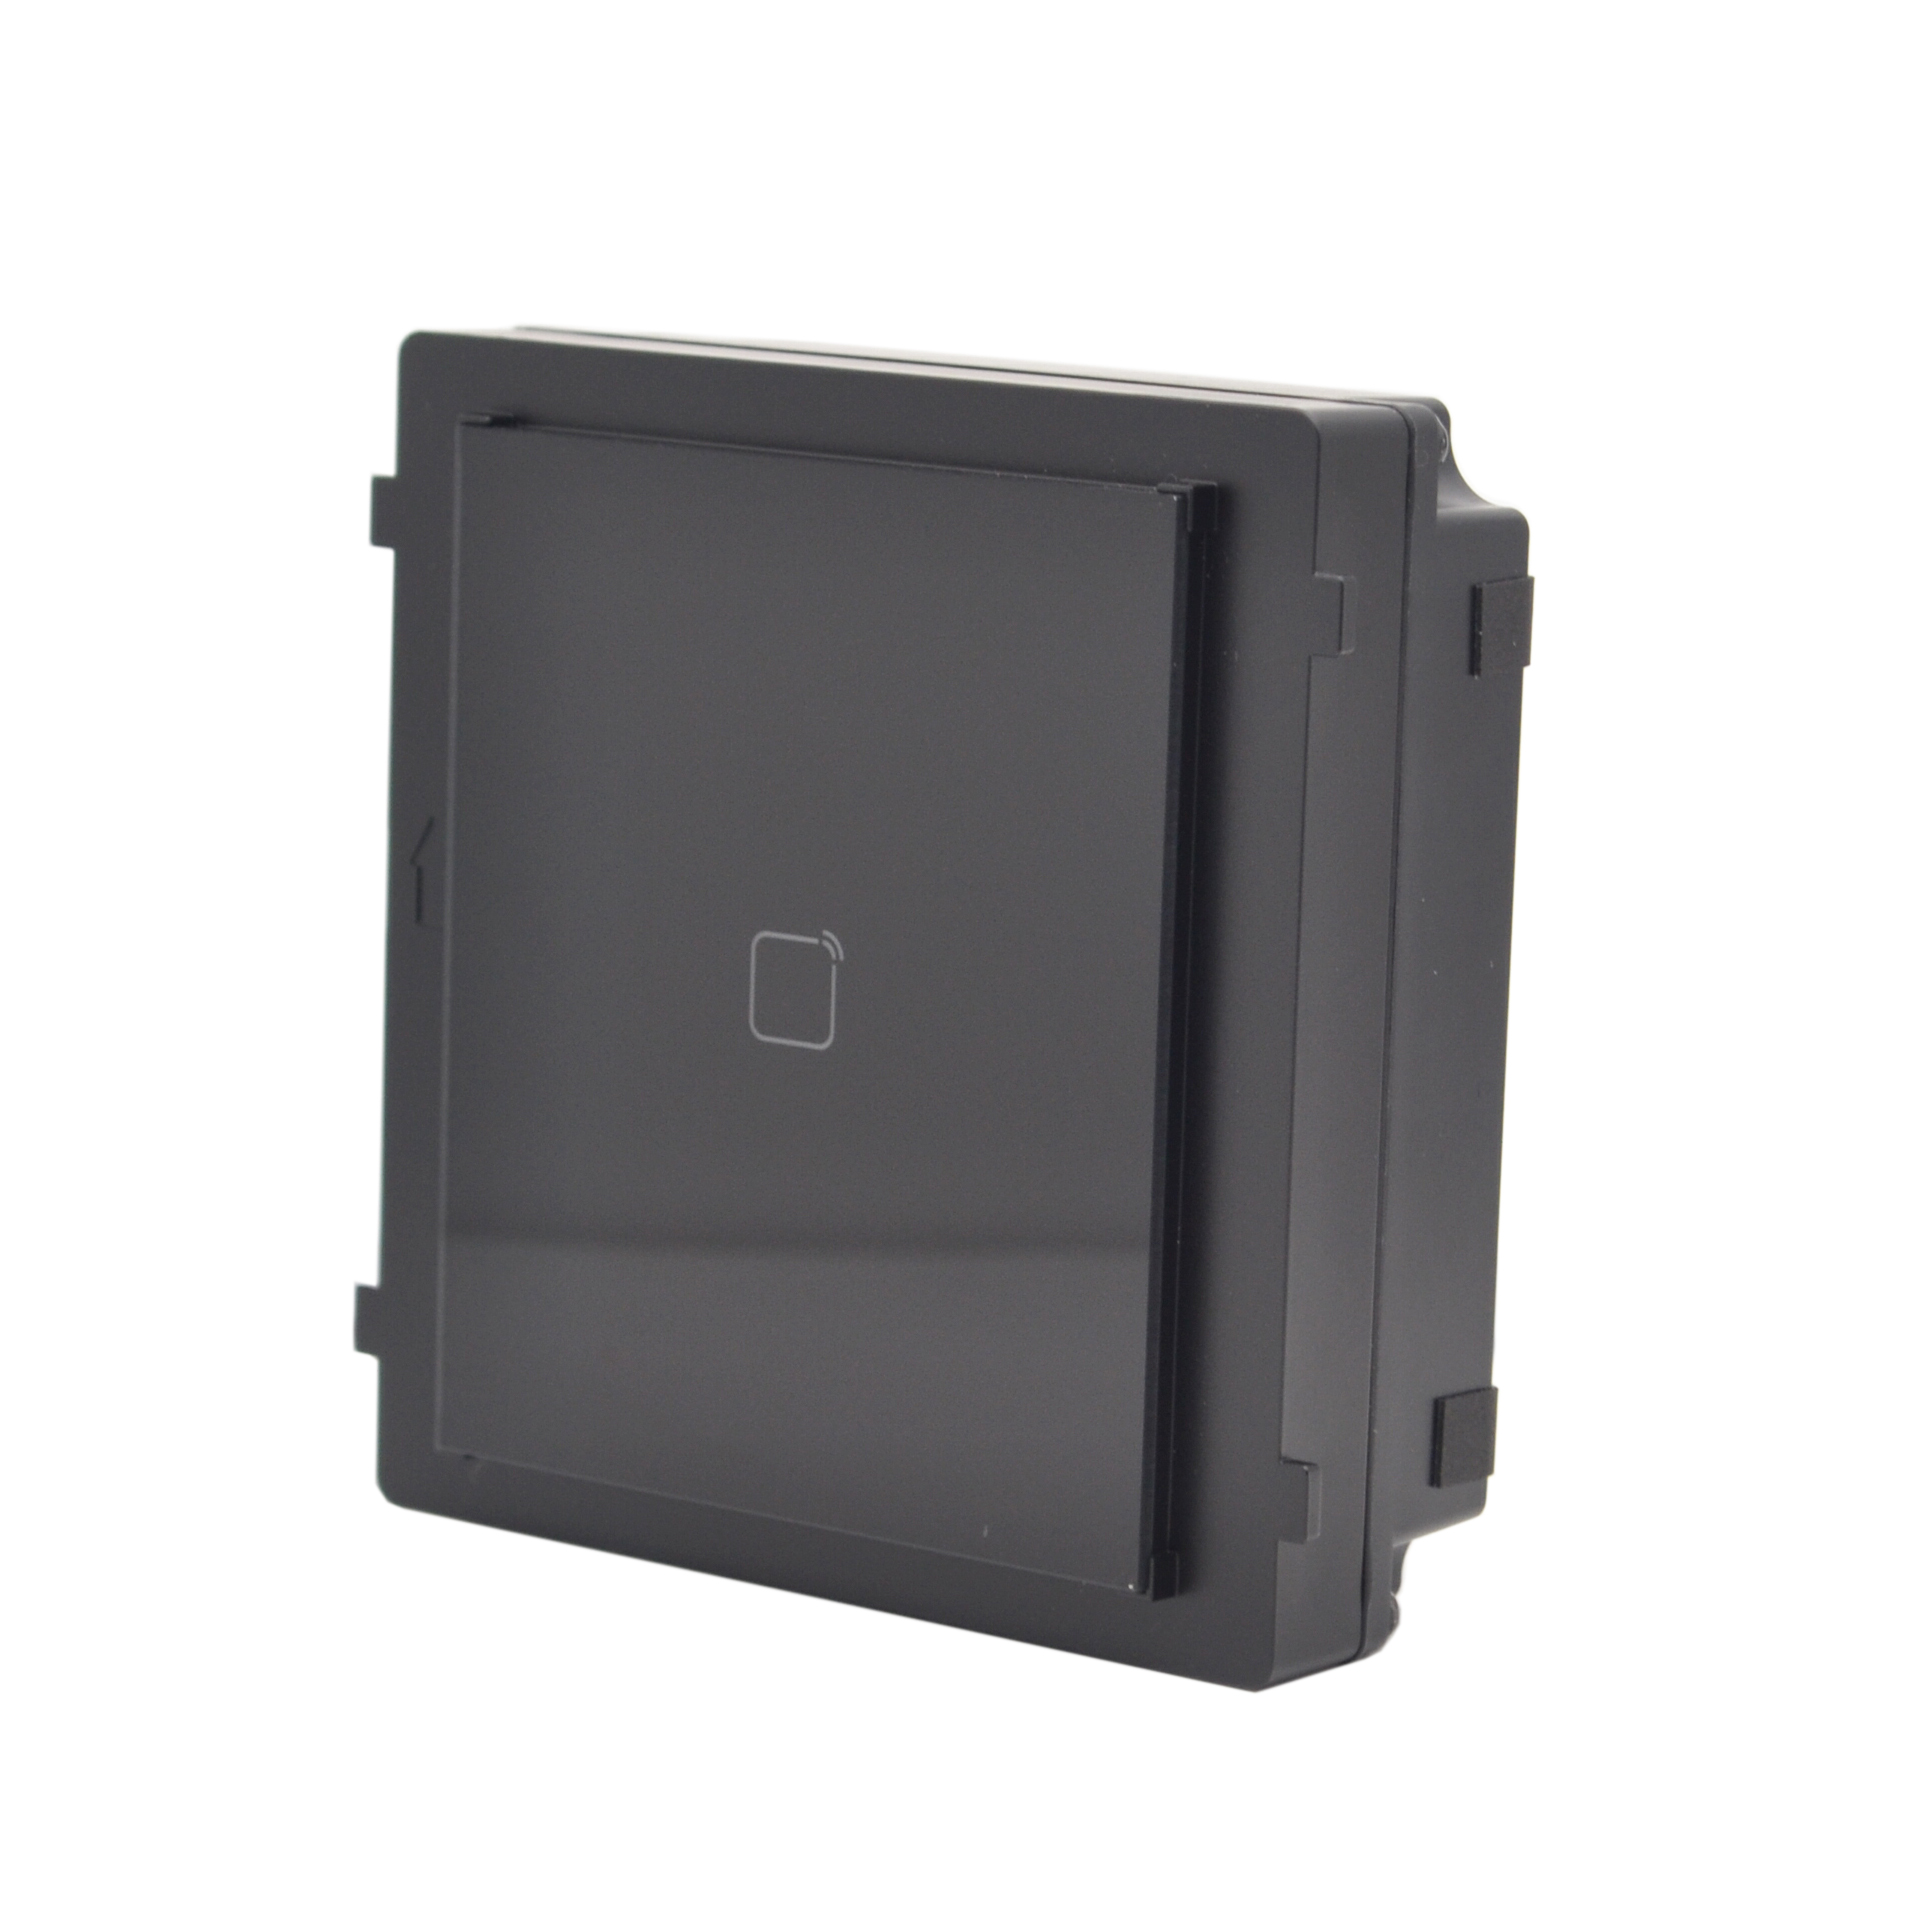 DS-KD-M Card Reader Module For DS-KD8003-IME1, IP Doorbell Parts,video Intercom Parts,Access Control Parts,doorbell Parts